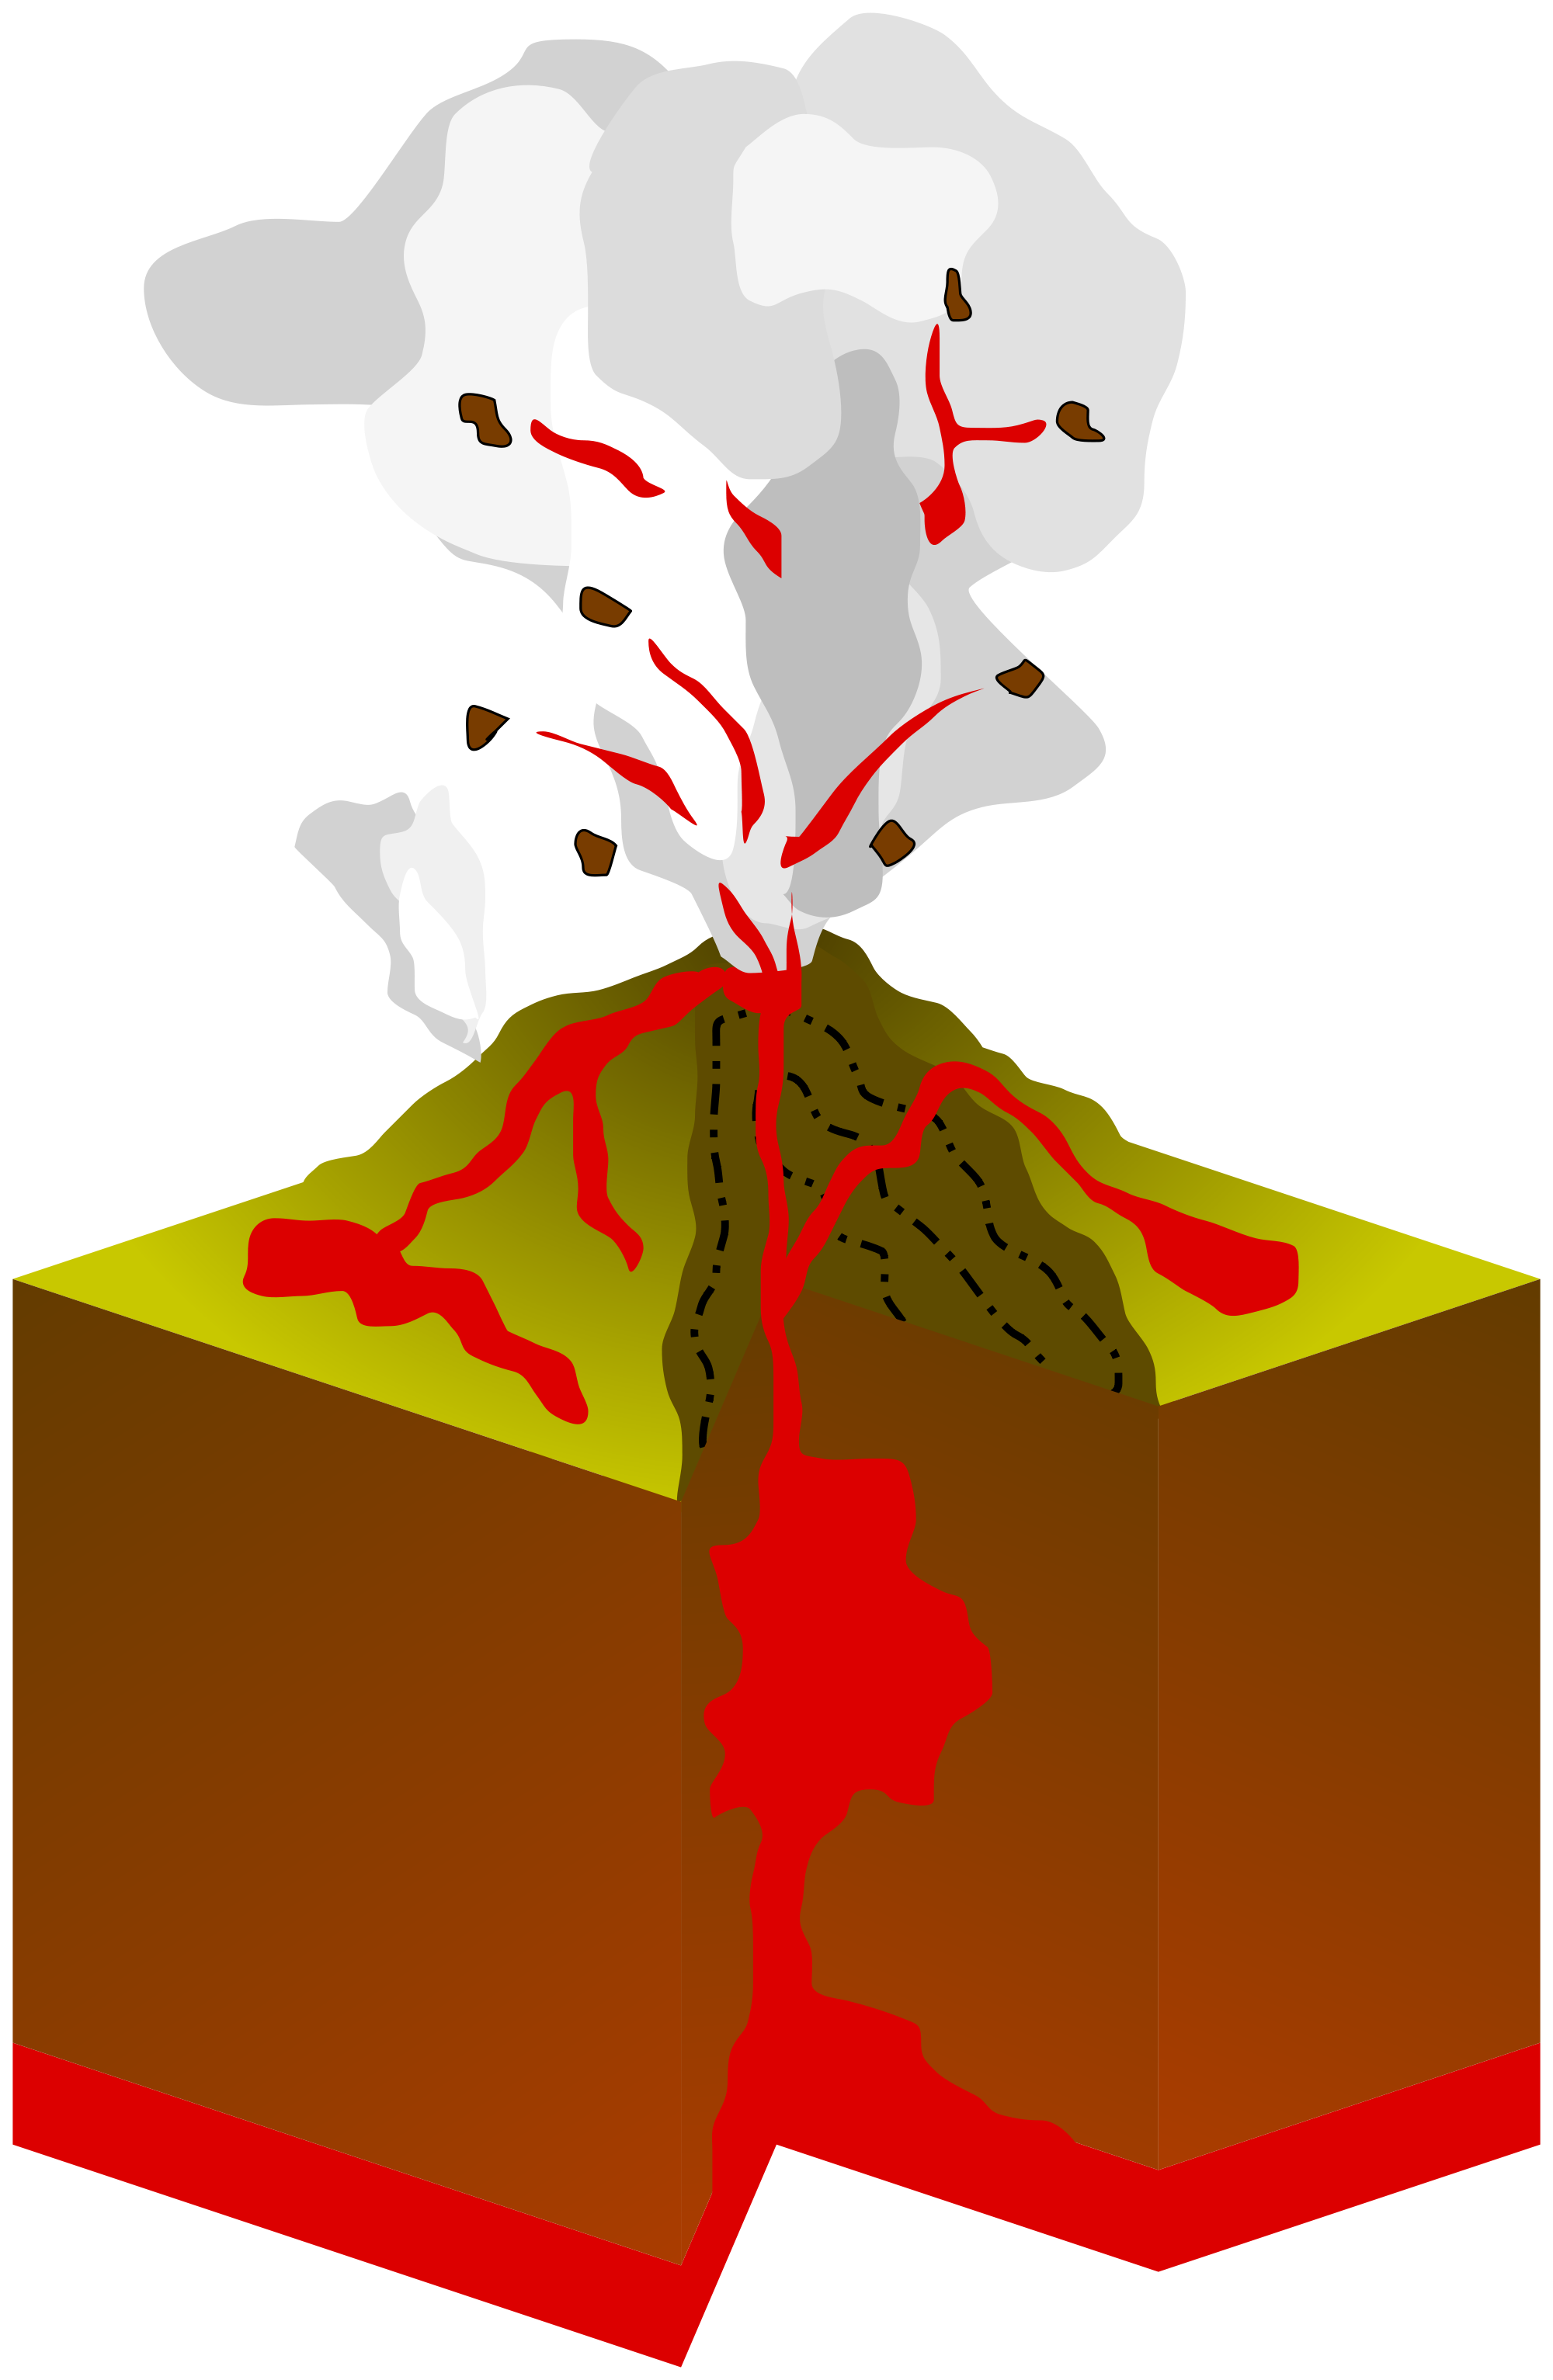 Volcano svg #15, Download drawings